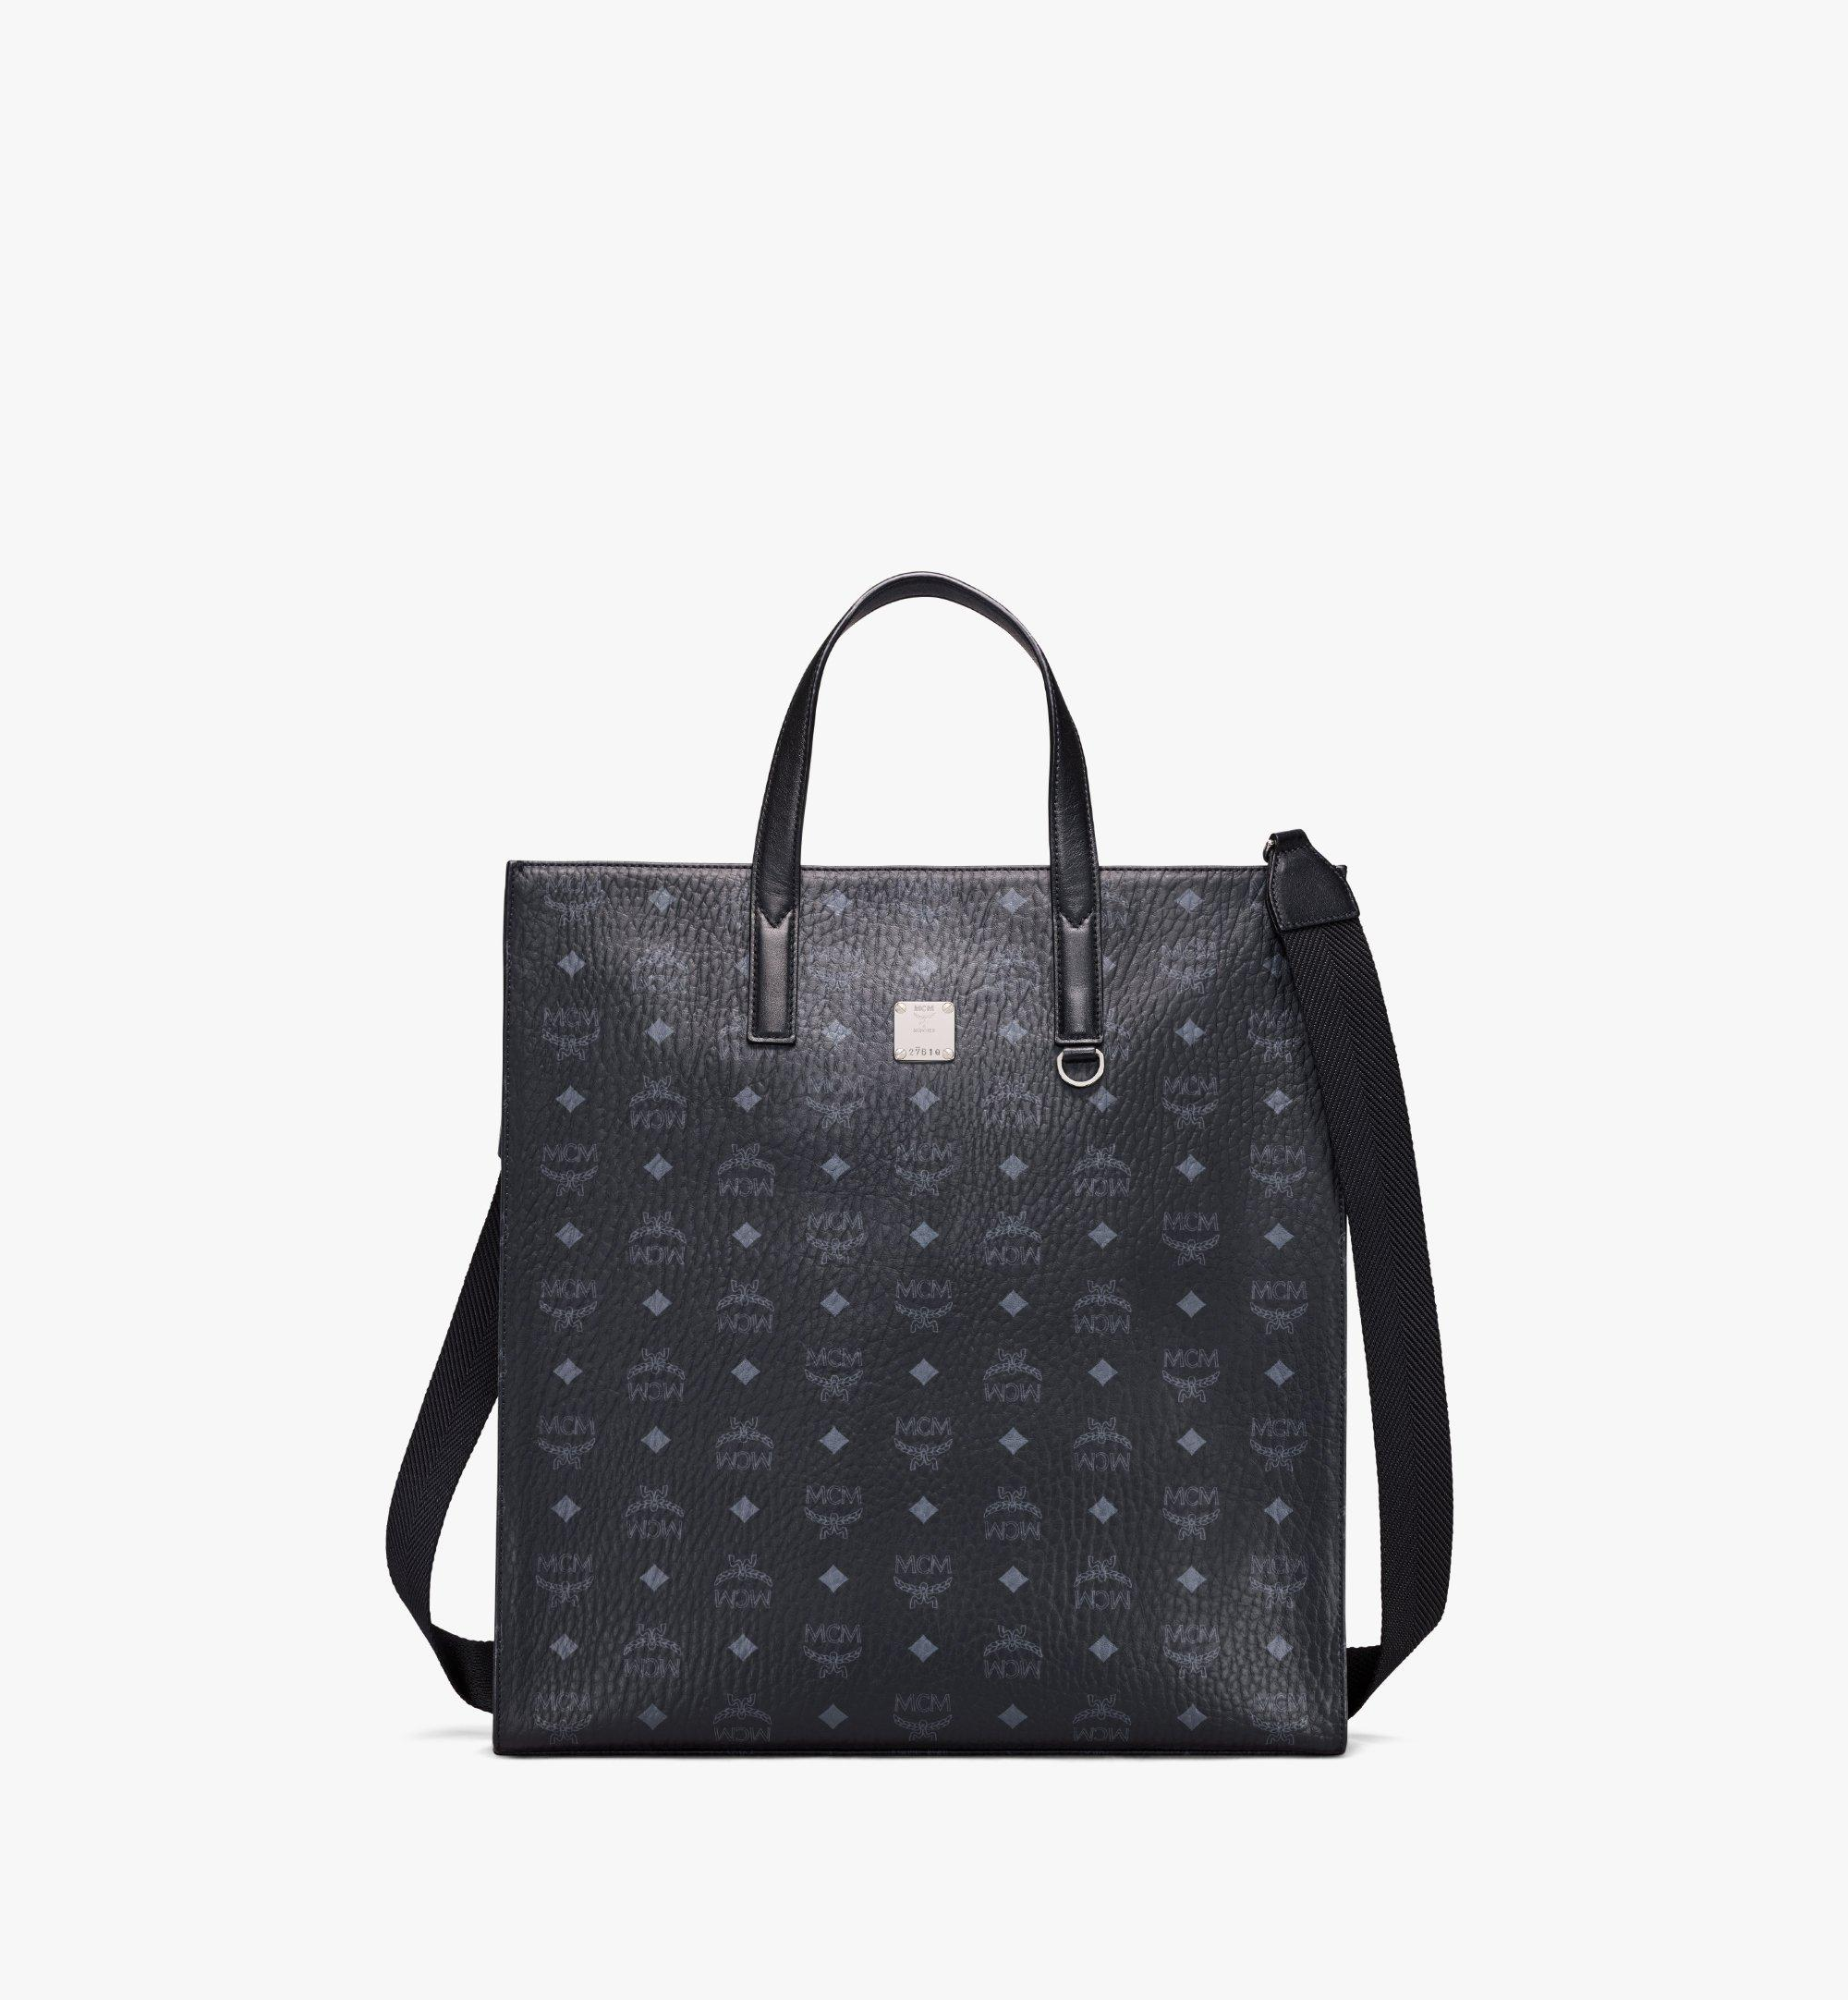 MCM Klassik Tote in Visetos Black MMTAAKC01BK001 Alternate View 1